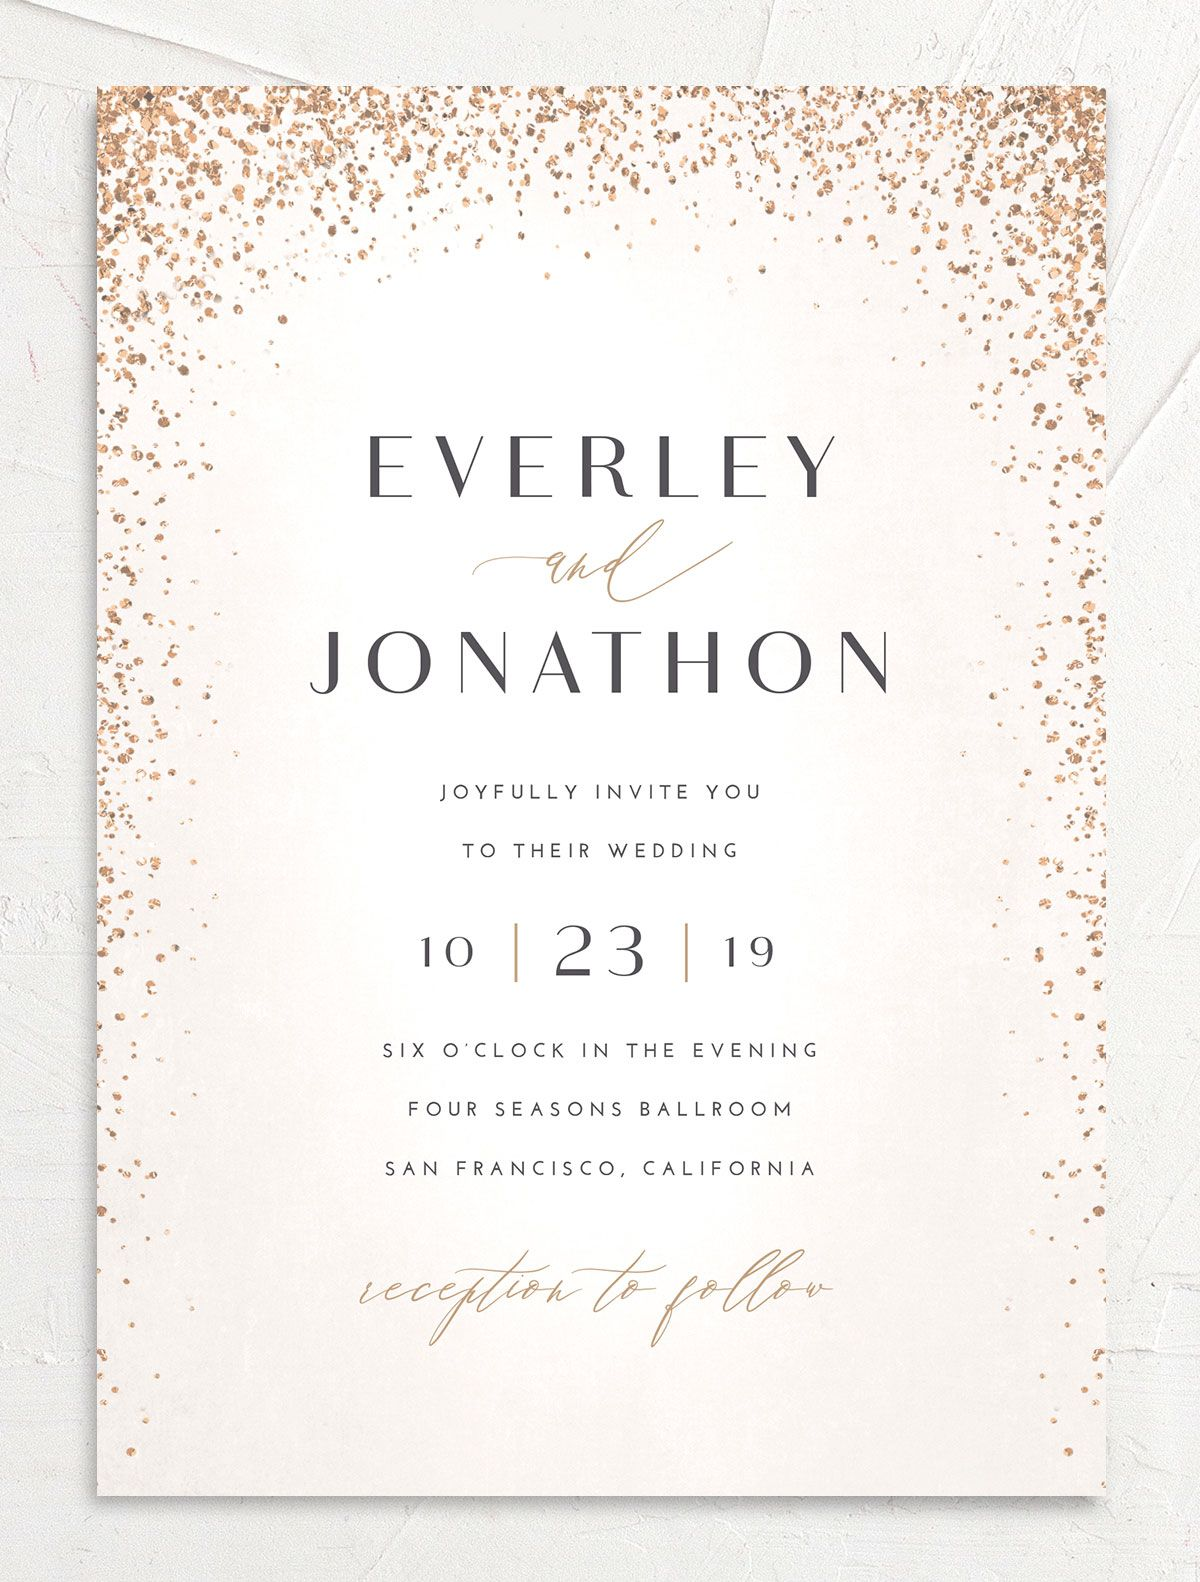 Sparkling Romance wedding invitation